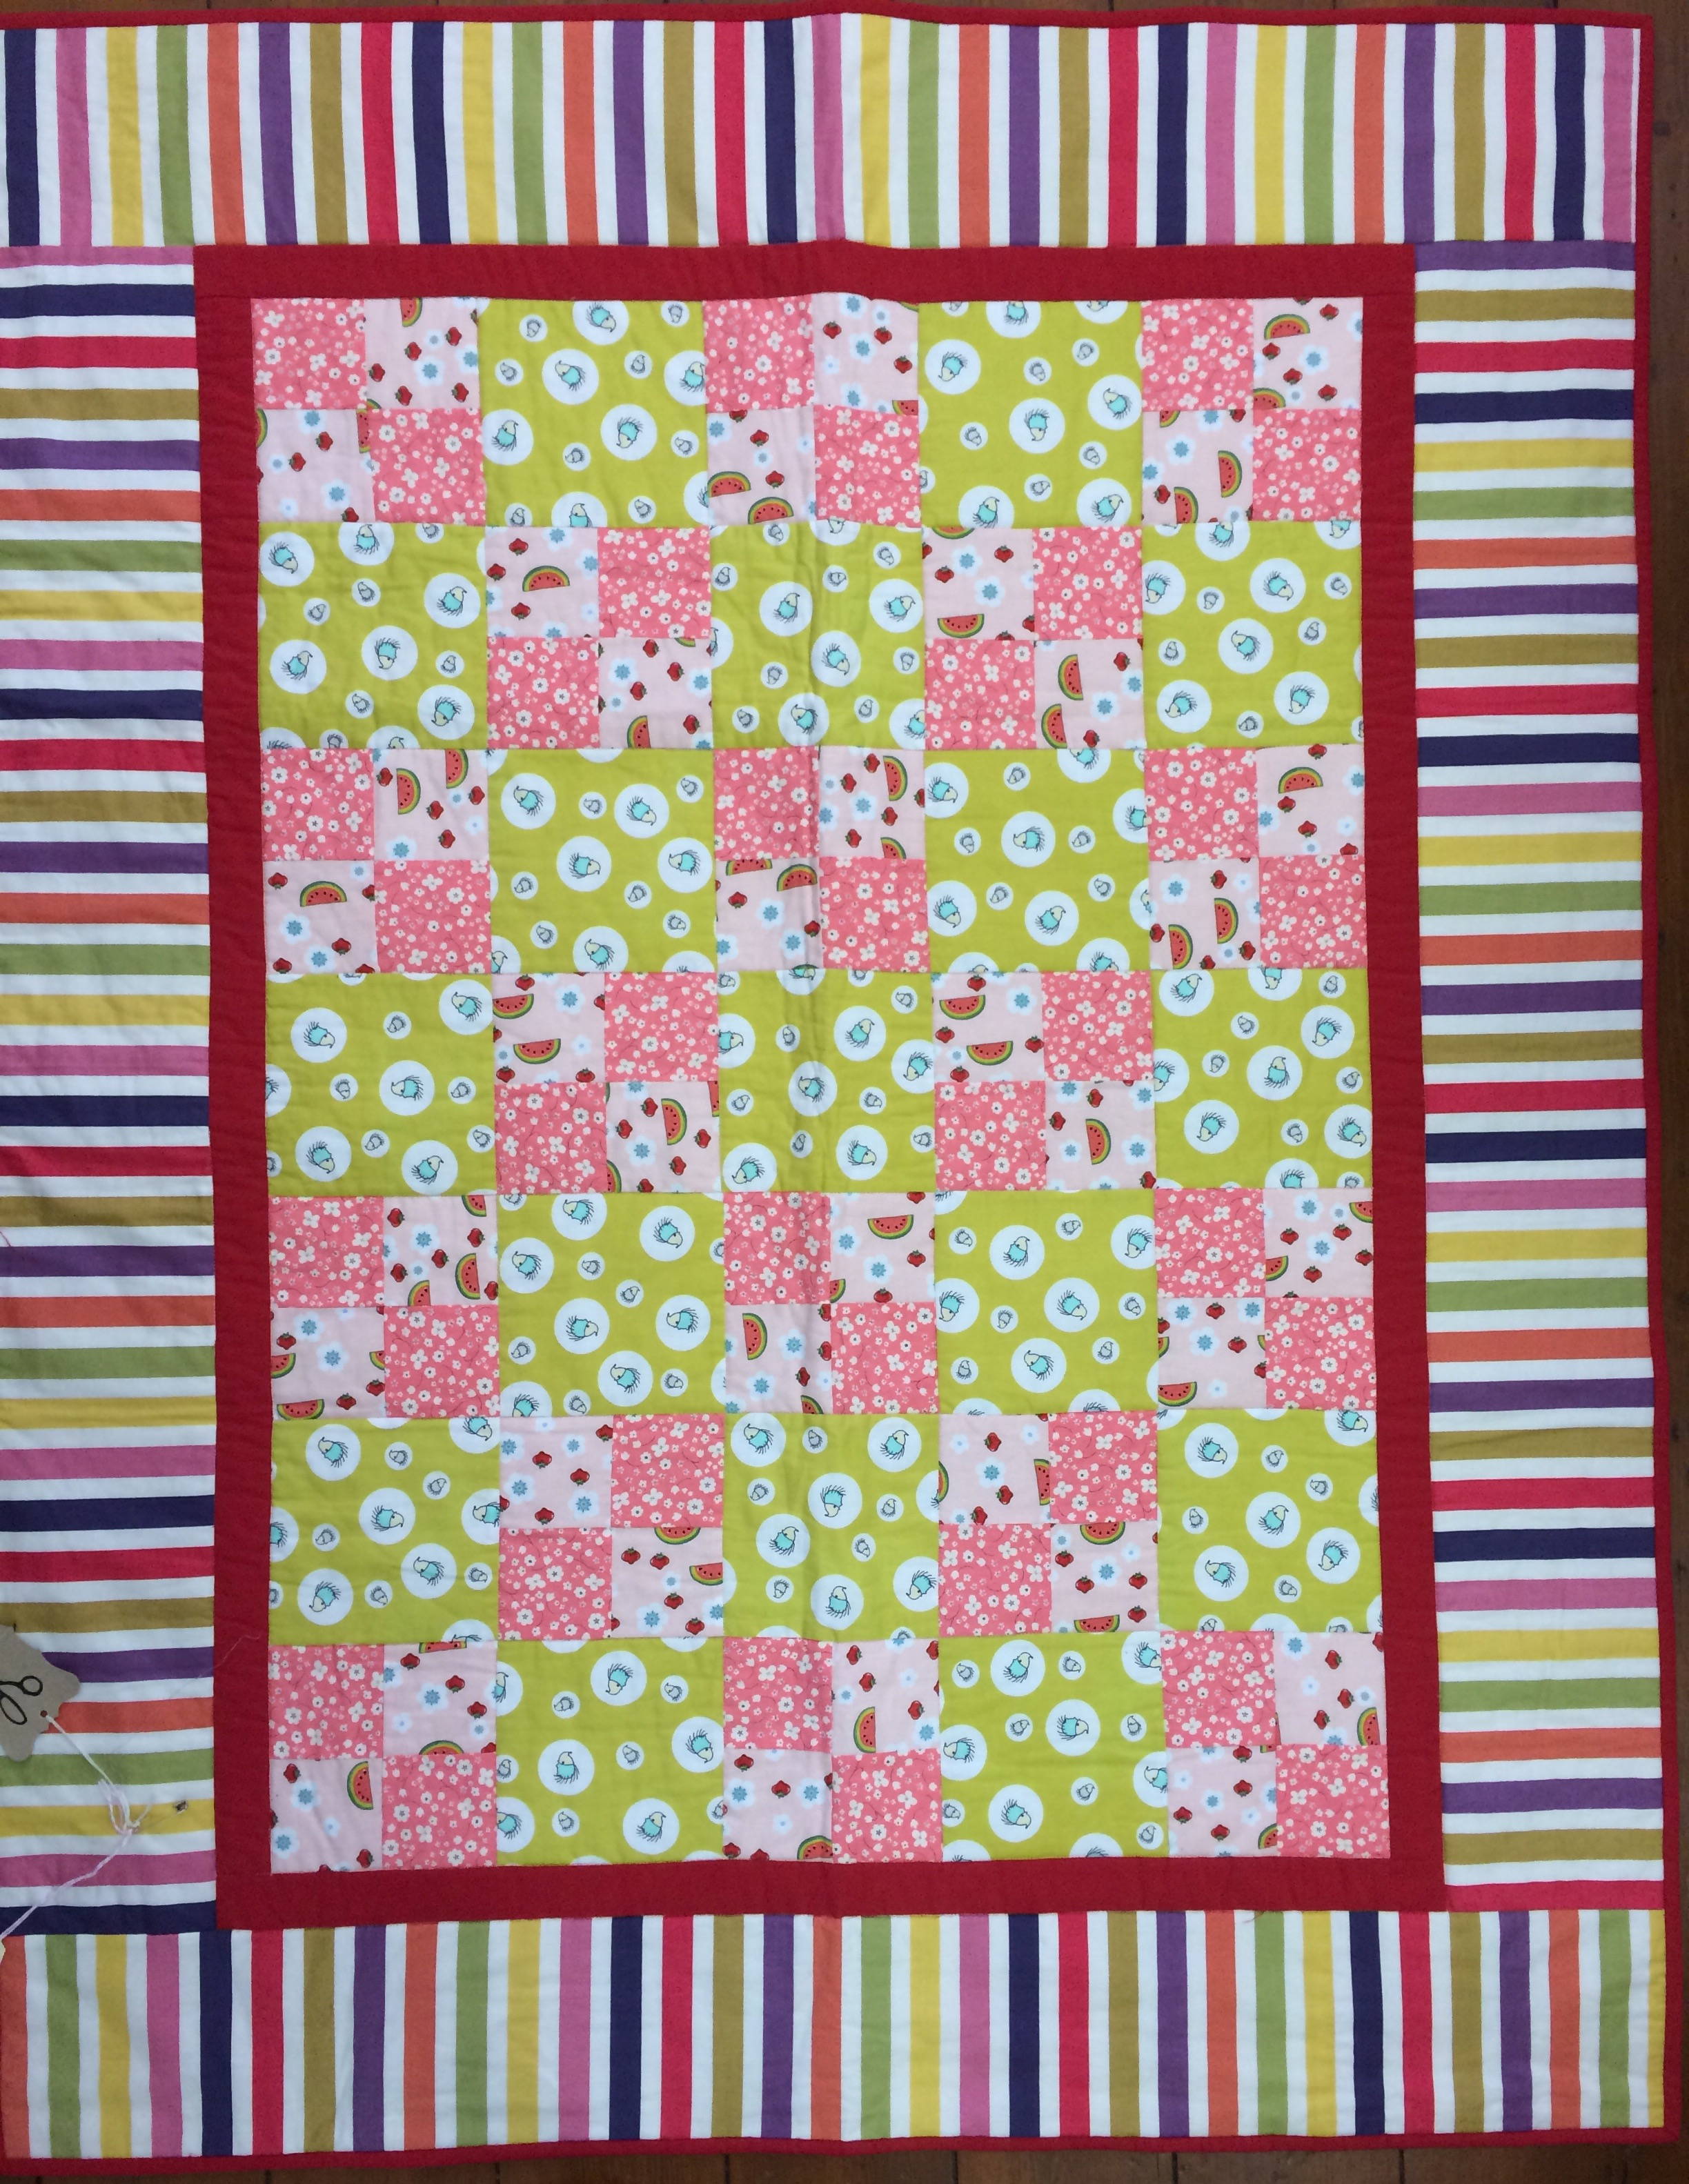 Hettie's Patch pattern, 'Four Patch Quilt'